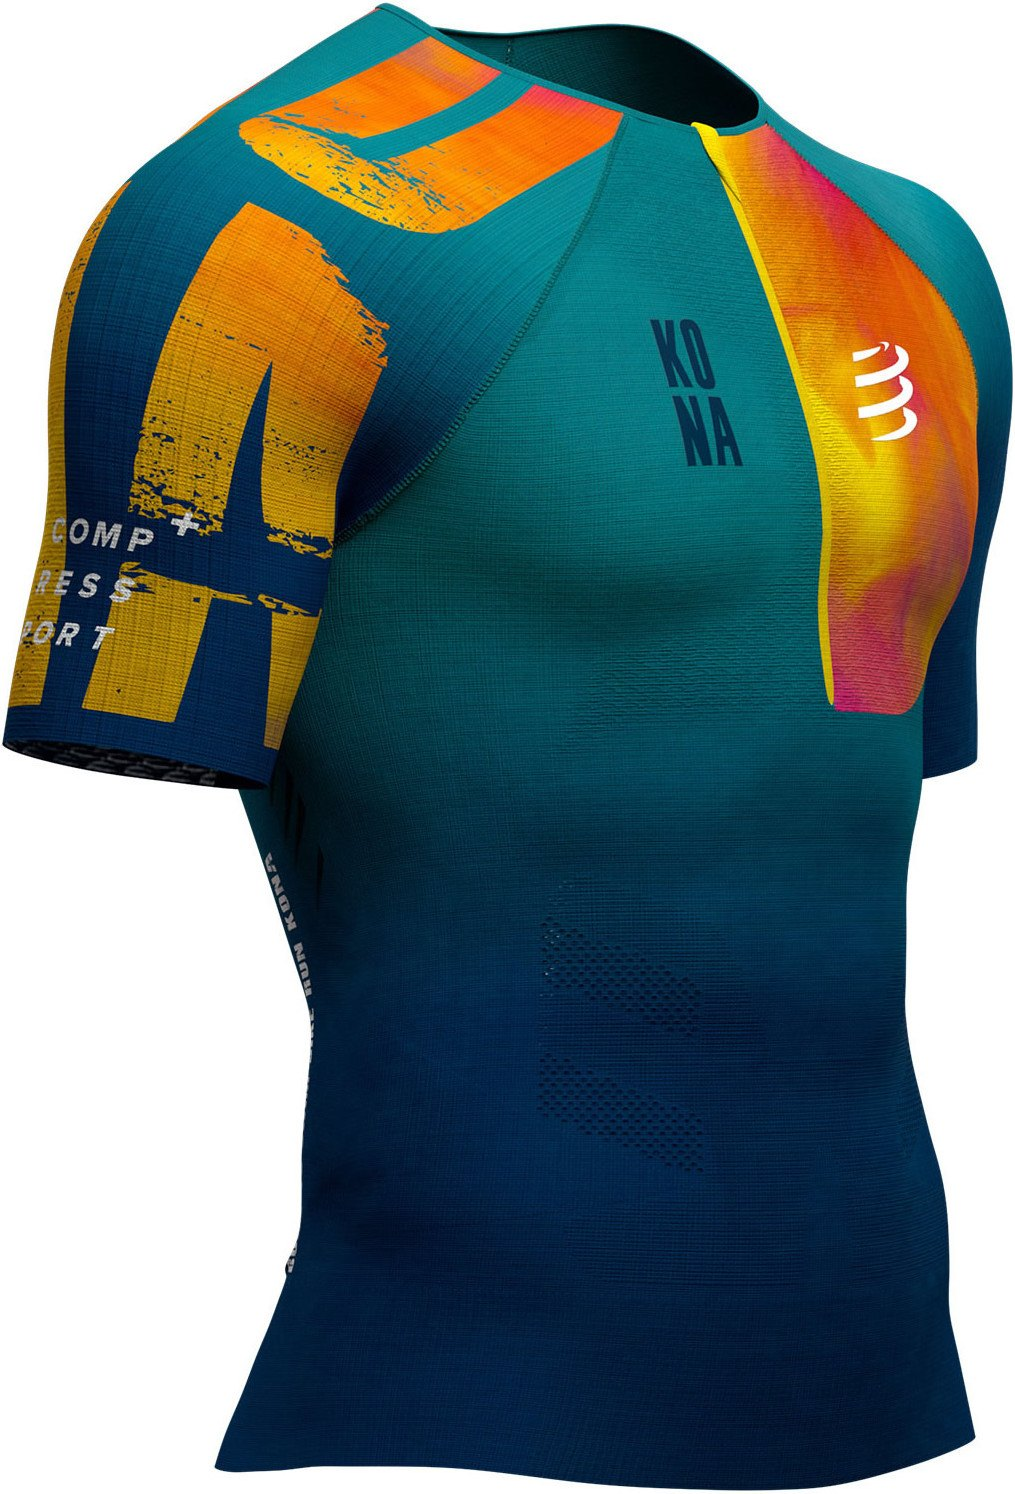 Compressport Camiseta Aero MC Postural Triatlón - Kona 2019